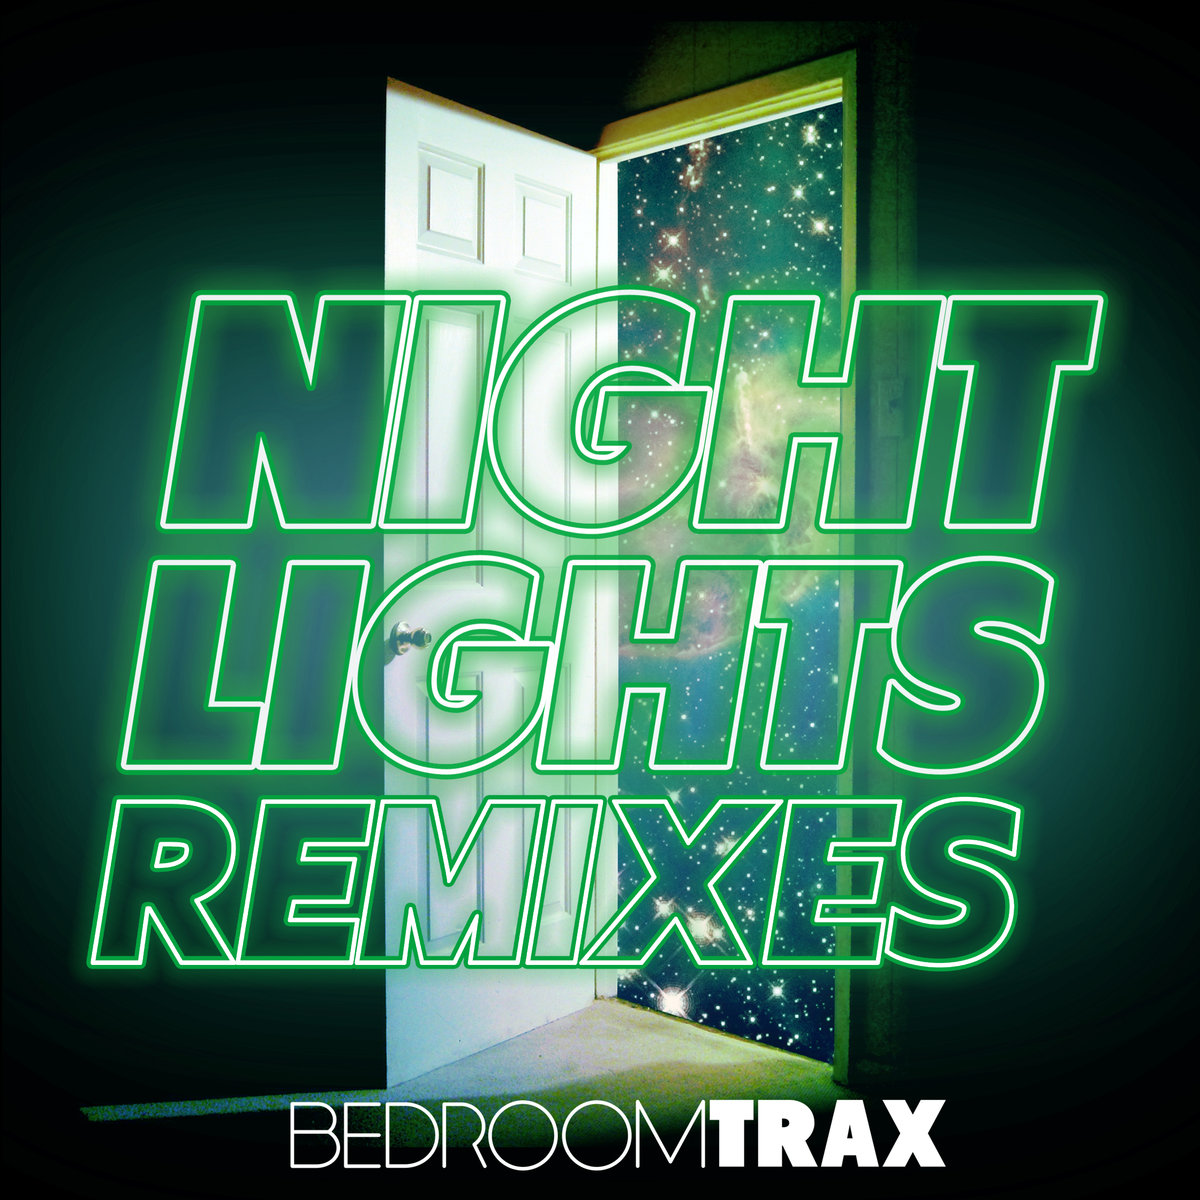 BedroomTrax - Night Lights Remixes (artwork)